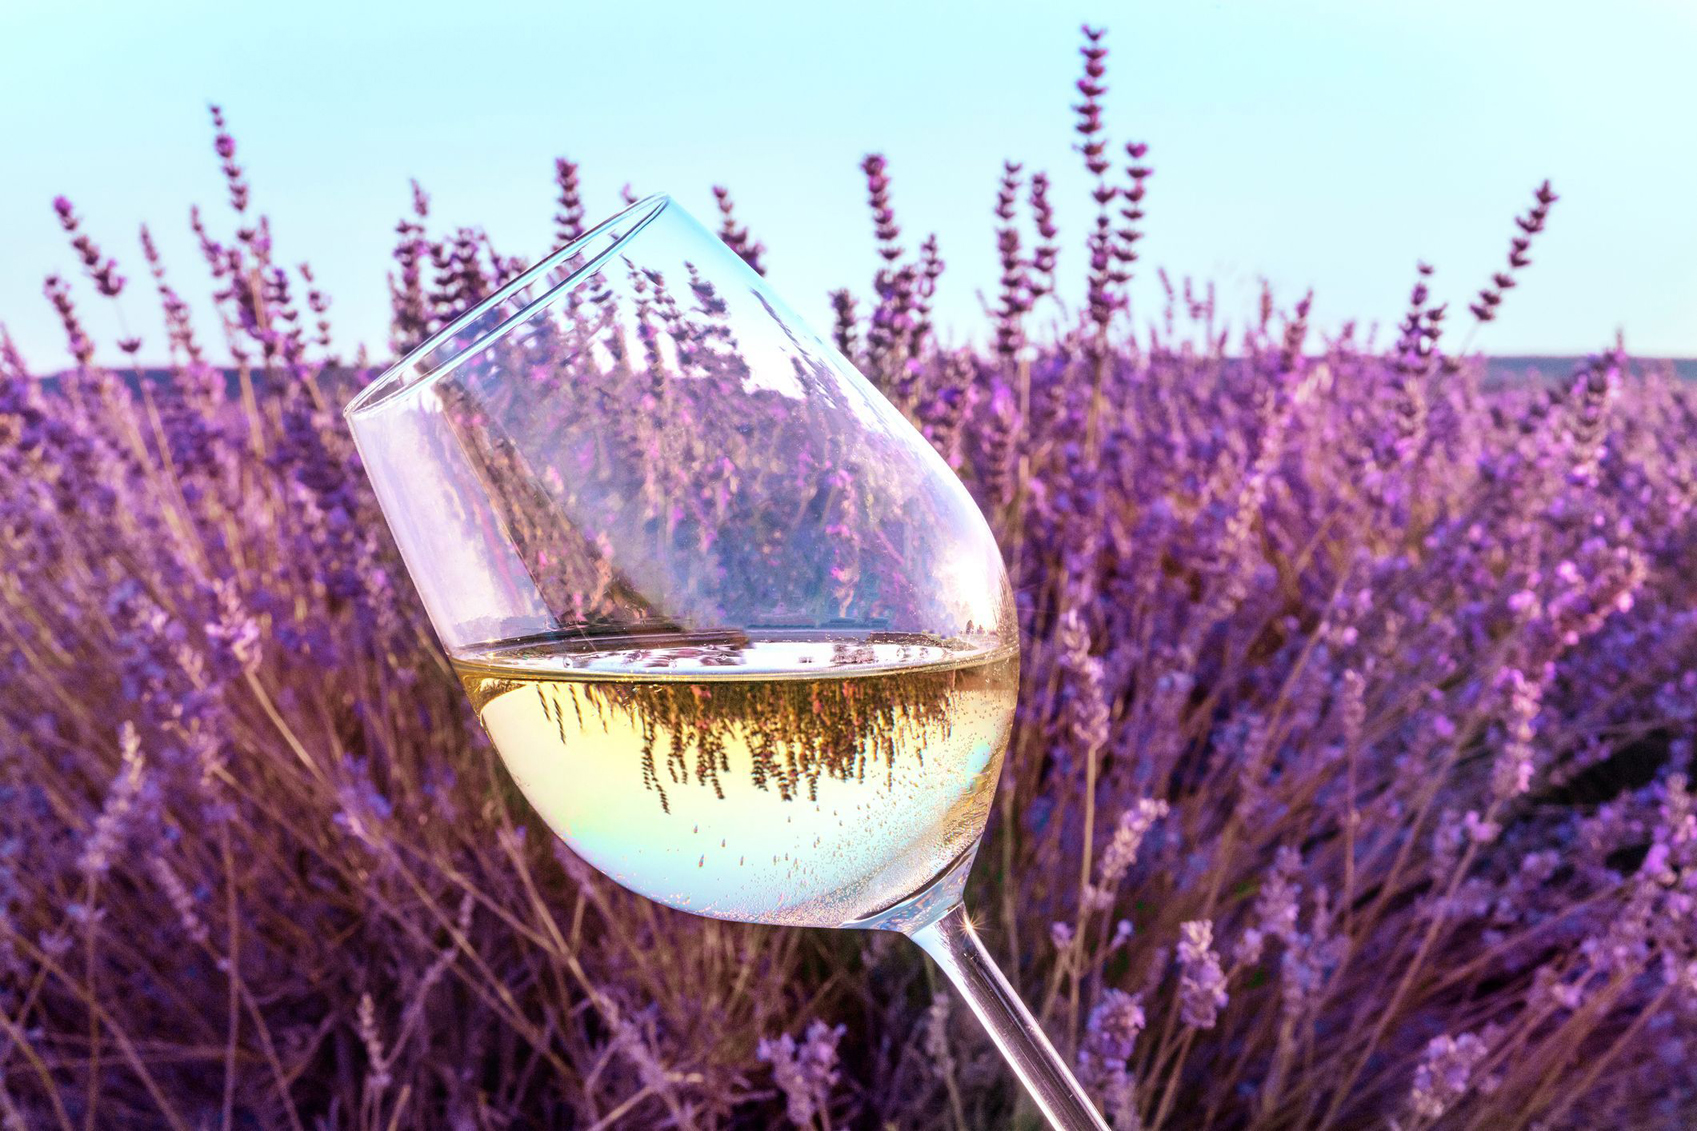 A glass of wine held against a lavender field